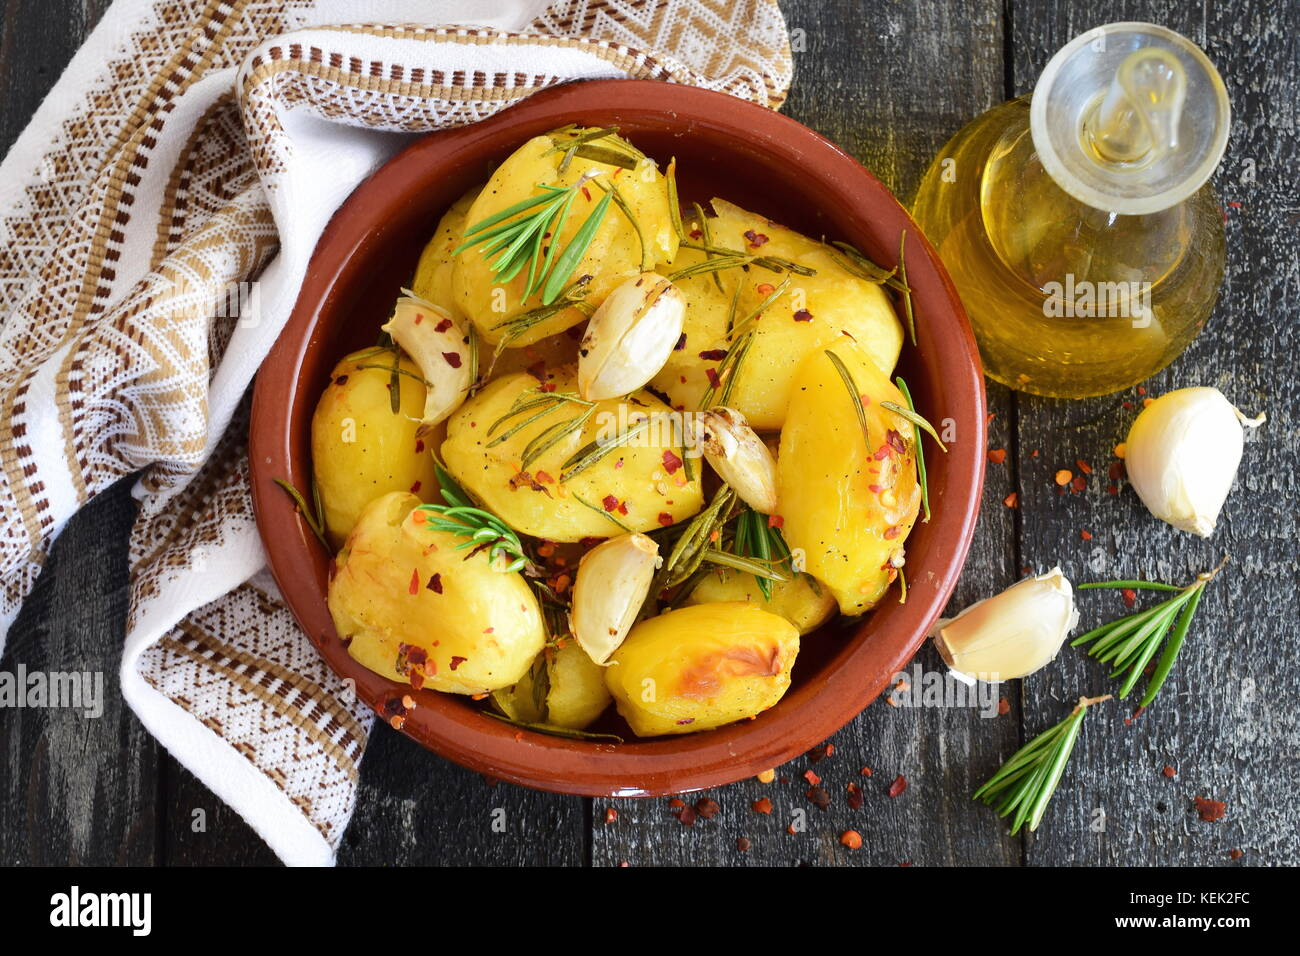 Oven cooked potato with rosemary, garlic, olive oil and mix of spices in a traditional ceramic bowl. Mediterranean - Stock Image